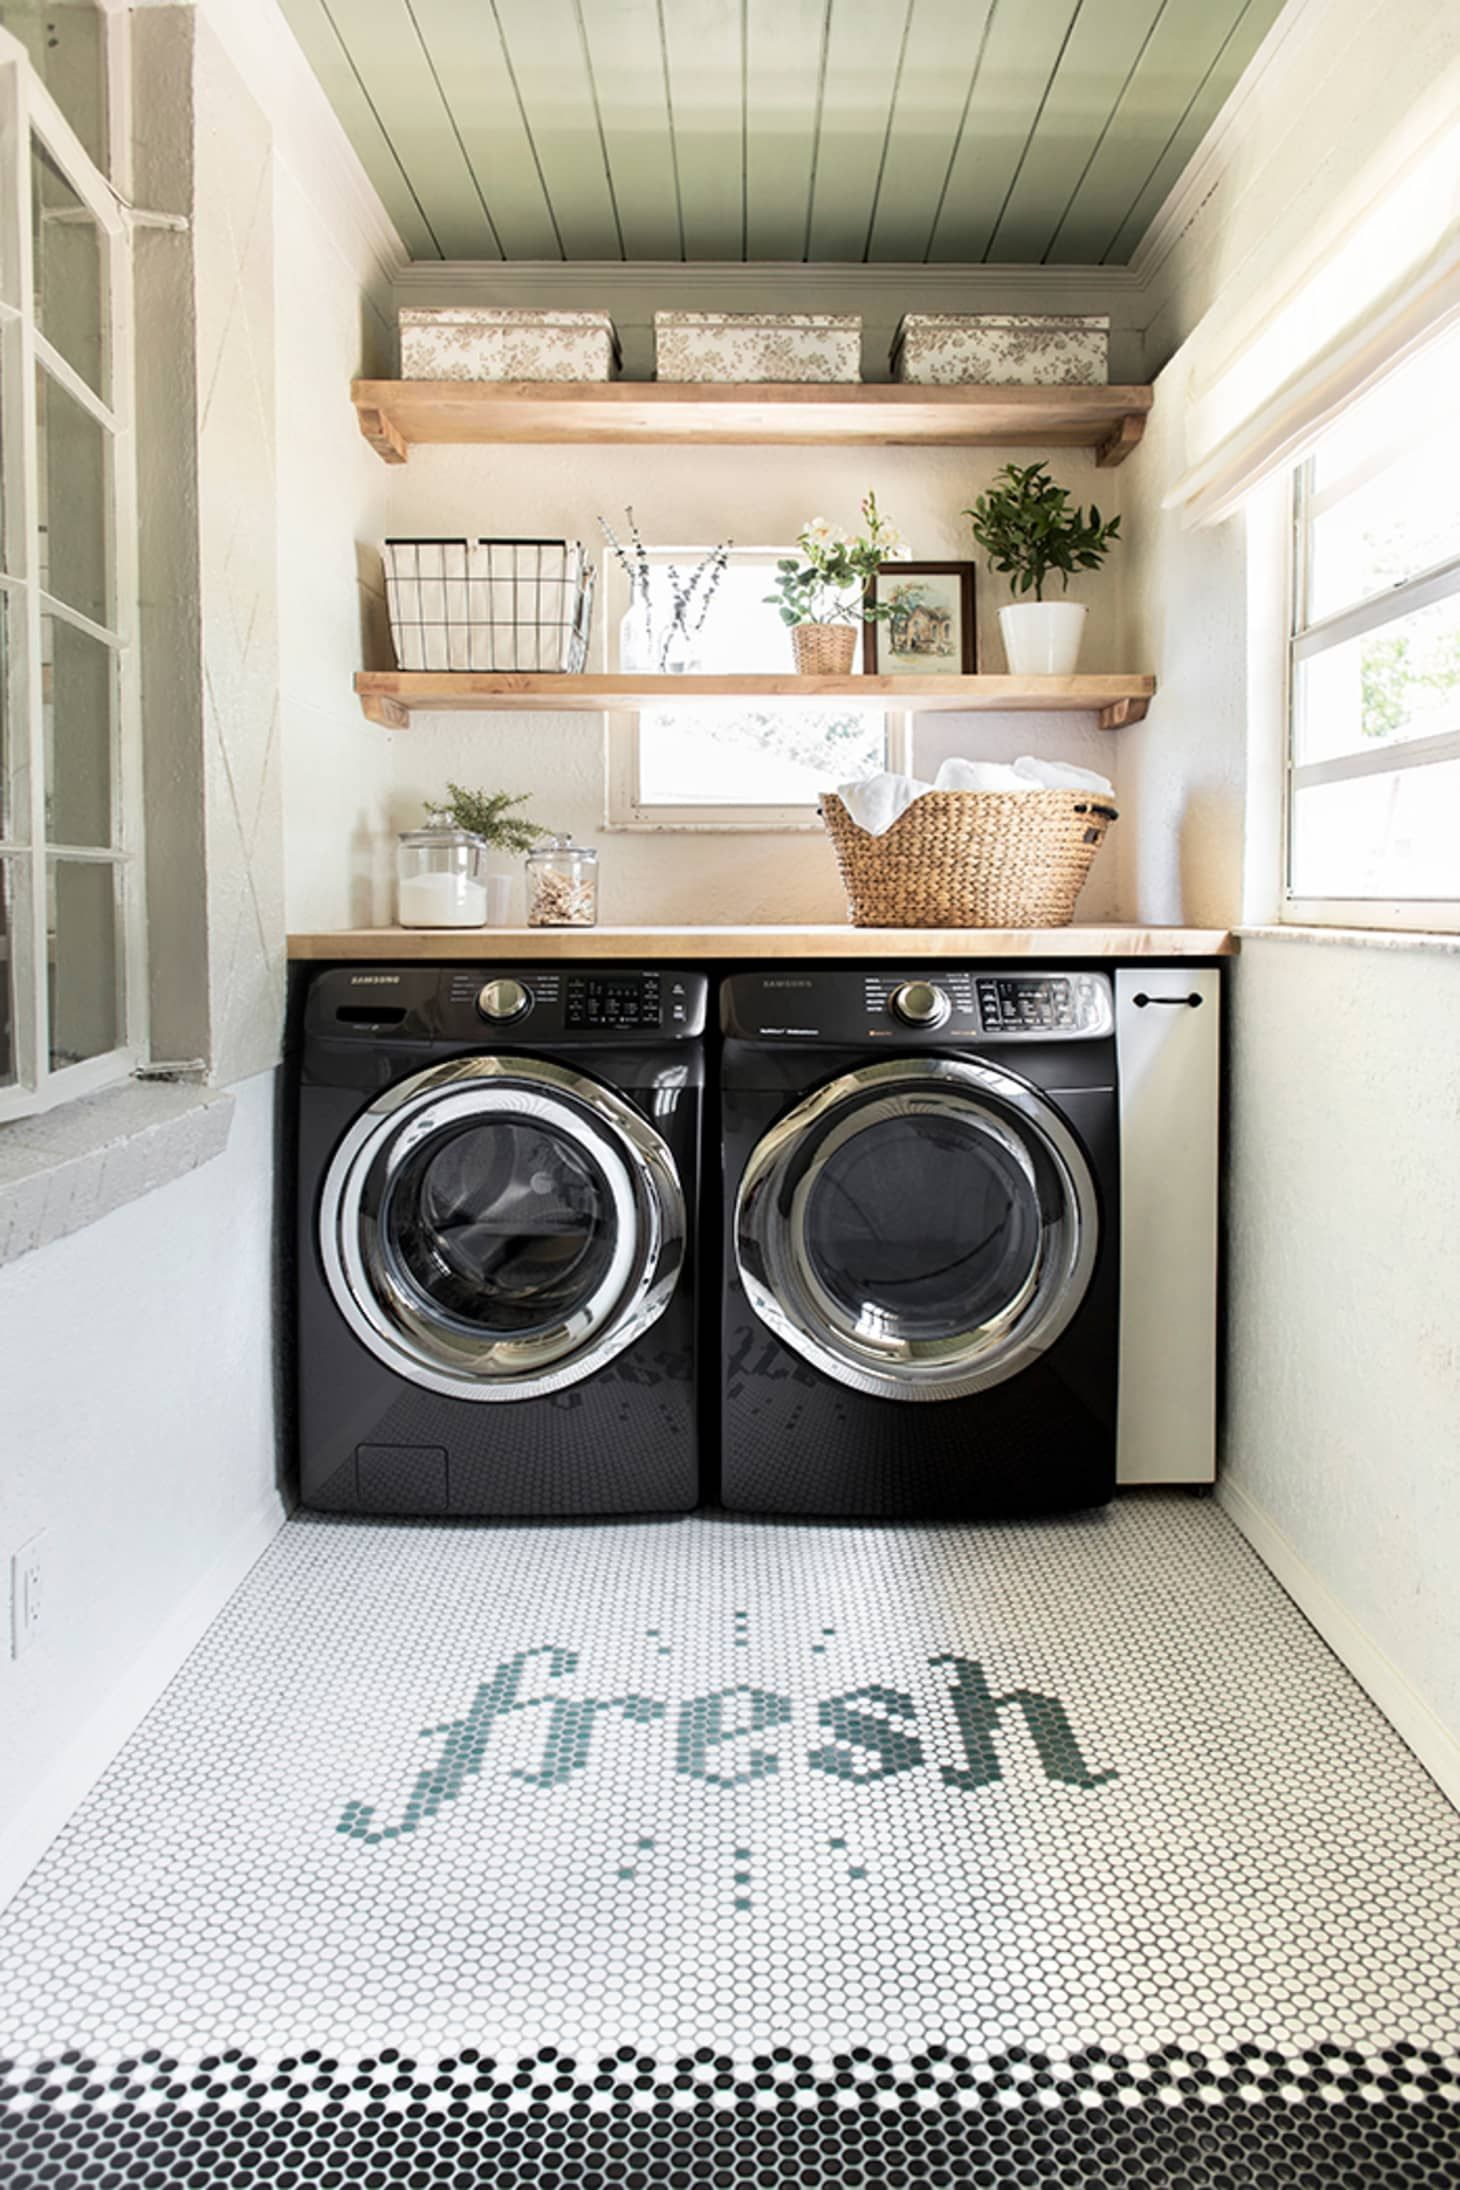 Laundry room with black washer and dryer and penny tile floor design